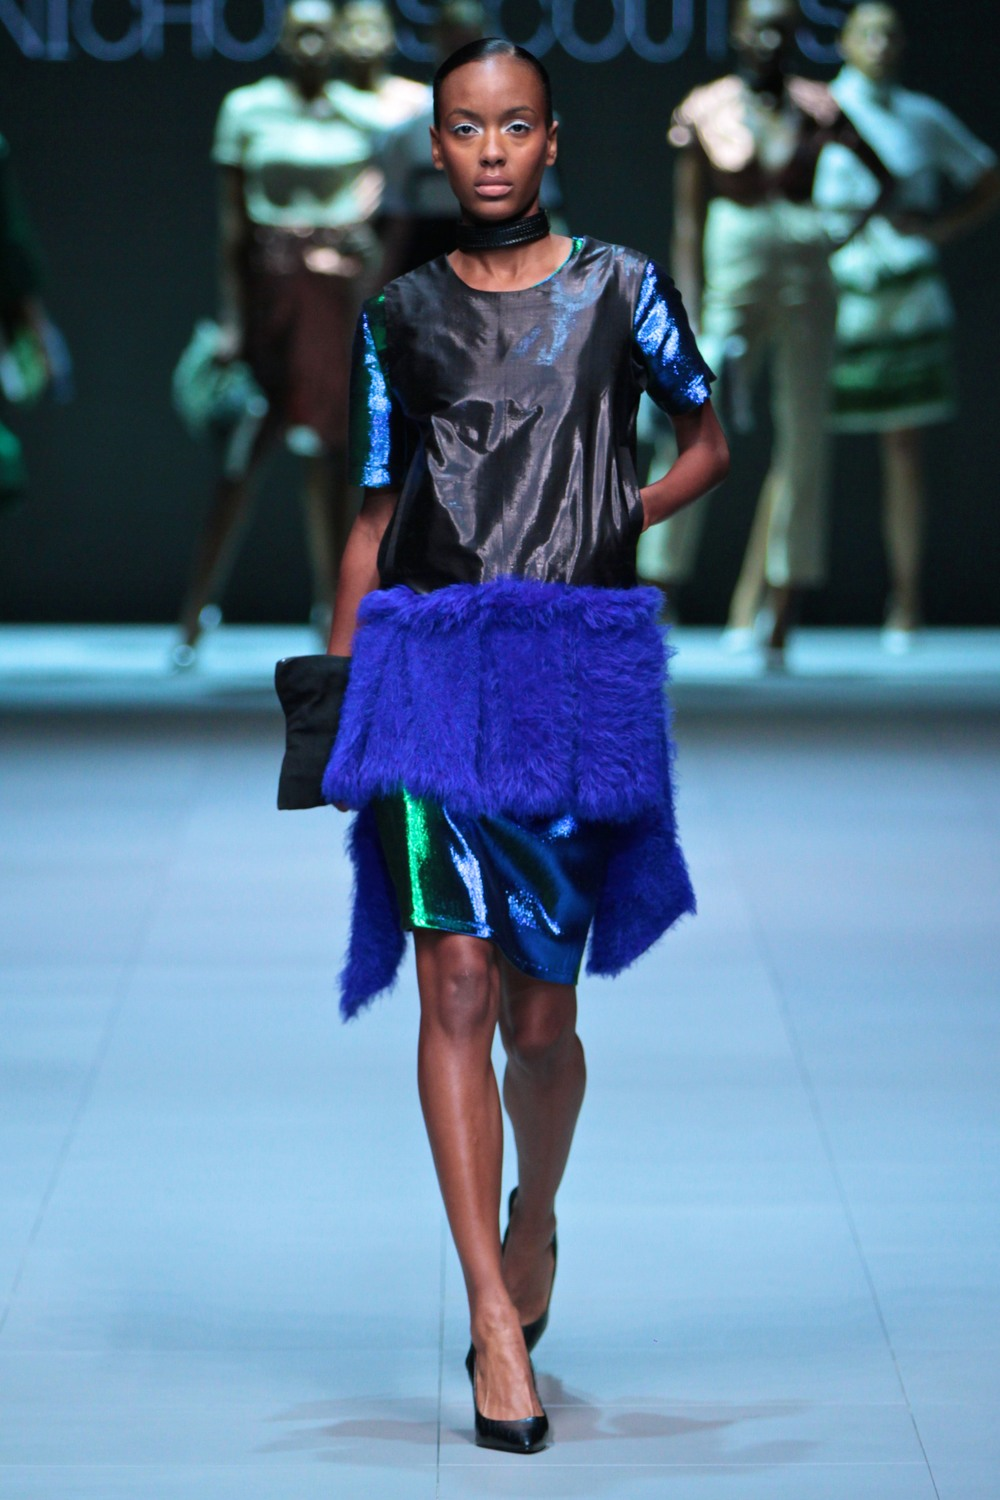 14_MBFWCT_SDR_0467_NicholasCoutts.jpg